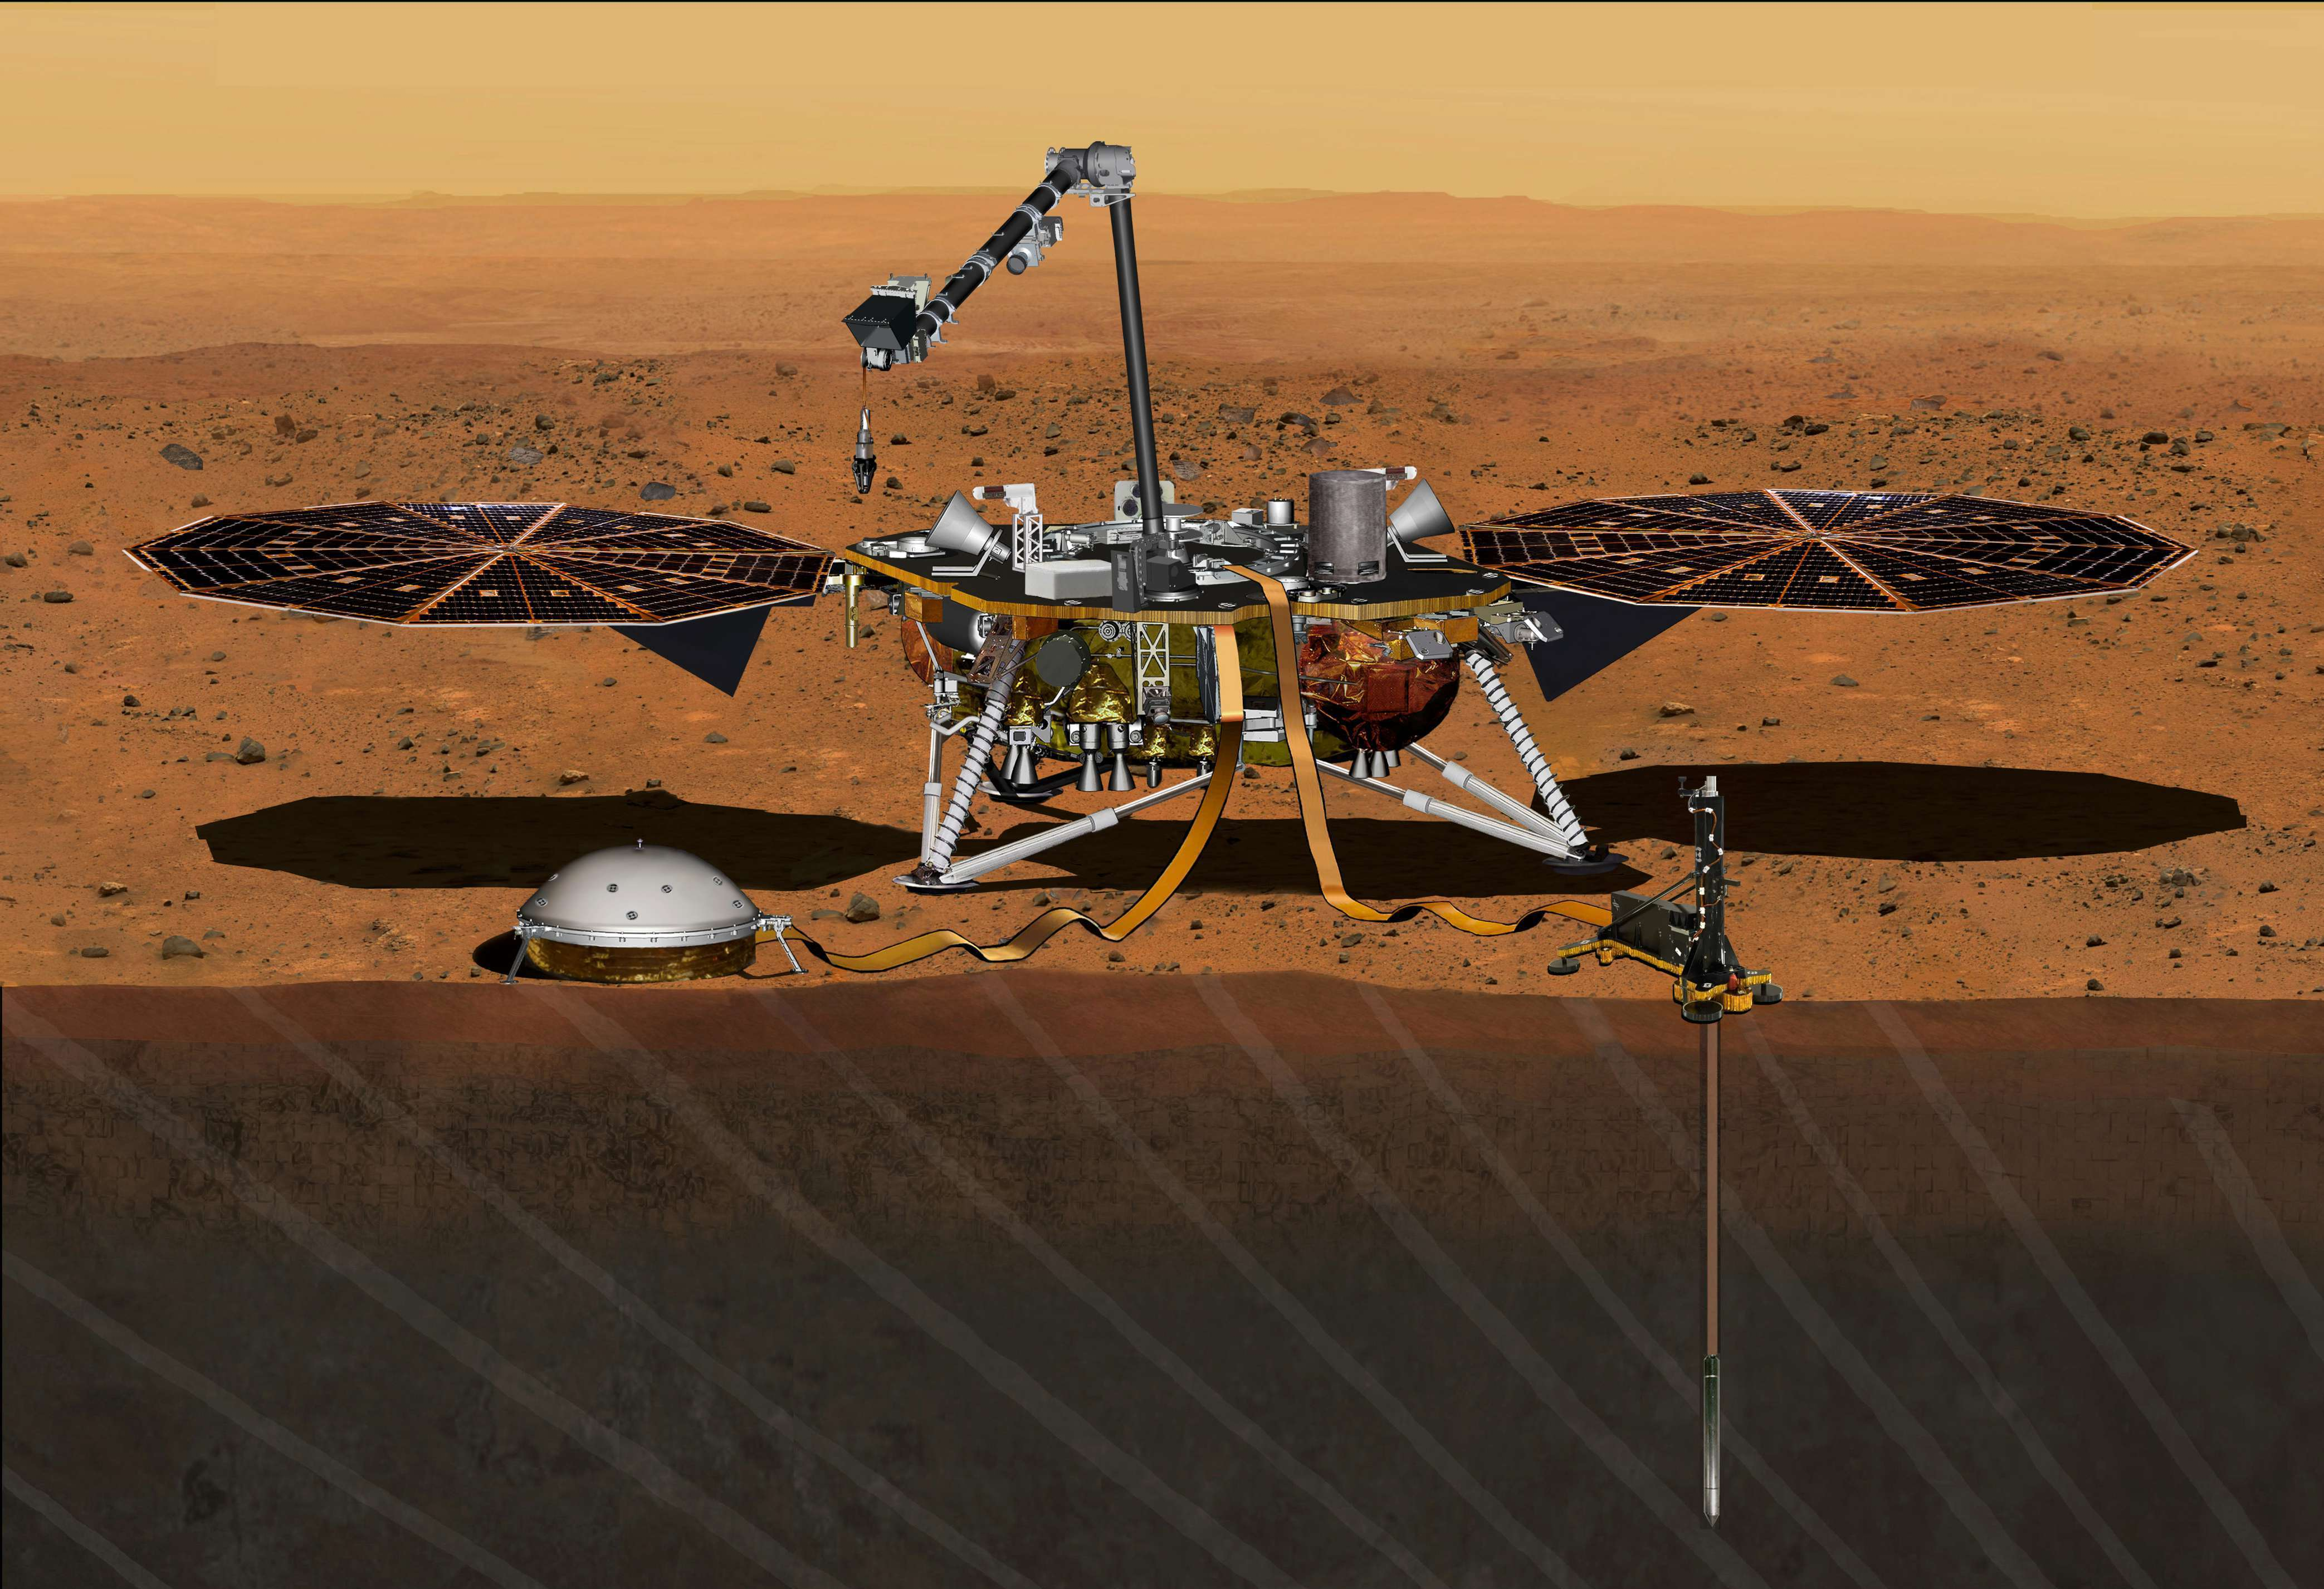 After Equipment Woes, NASA Mission To Mars Is Rescheduled For 2018